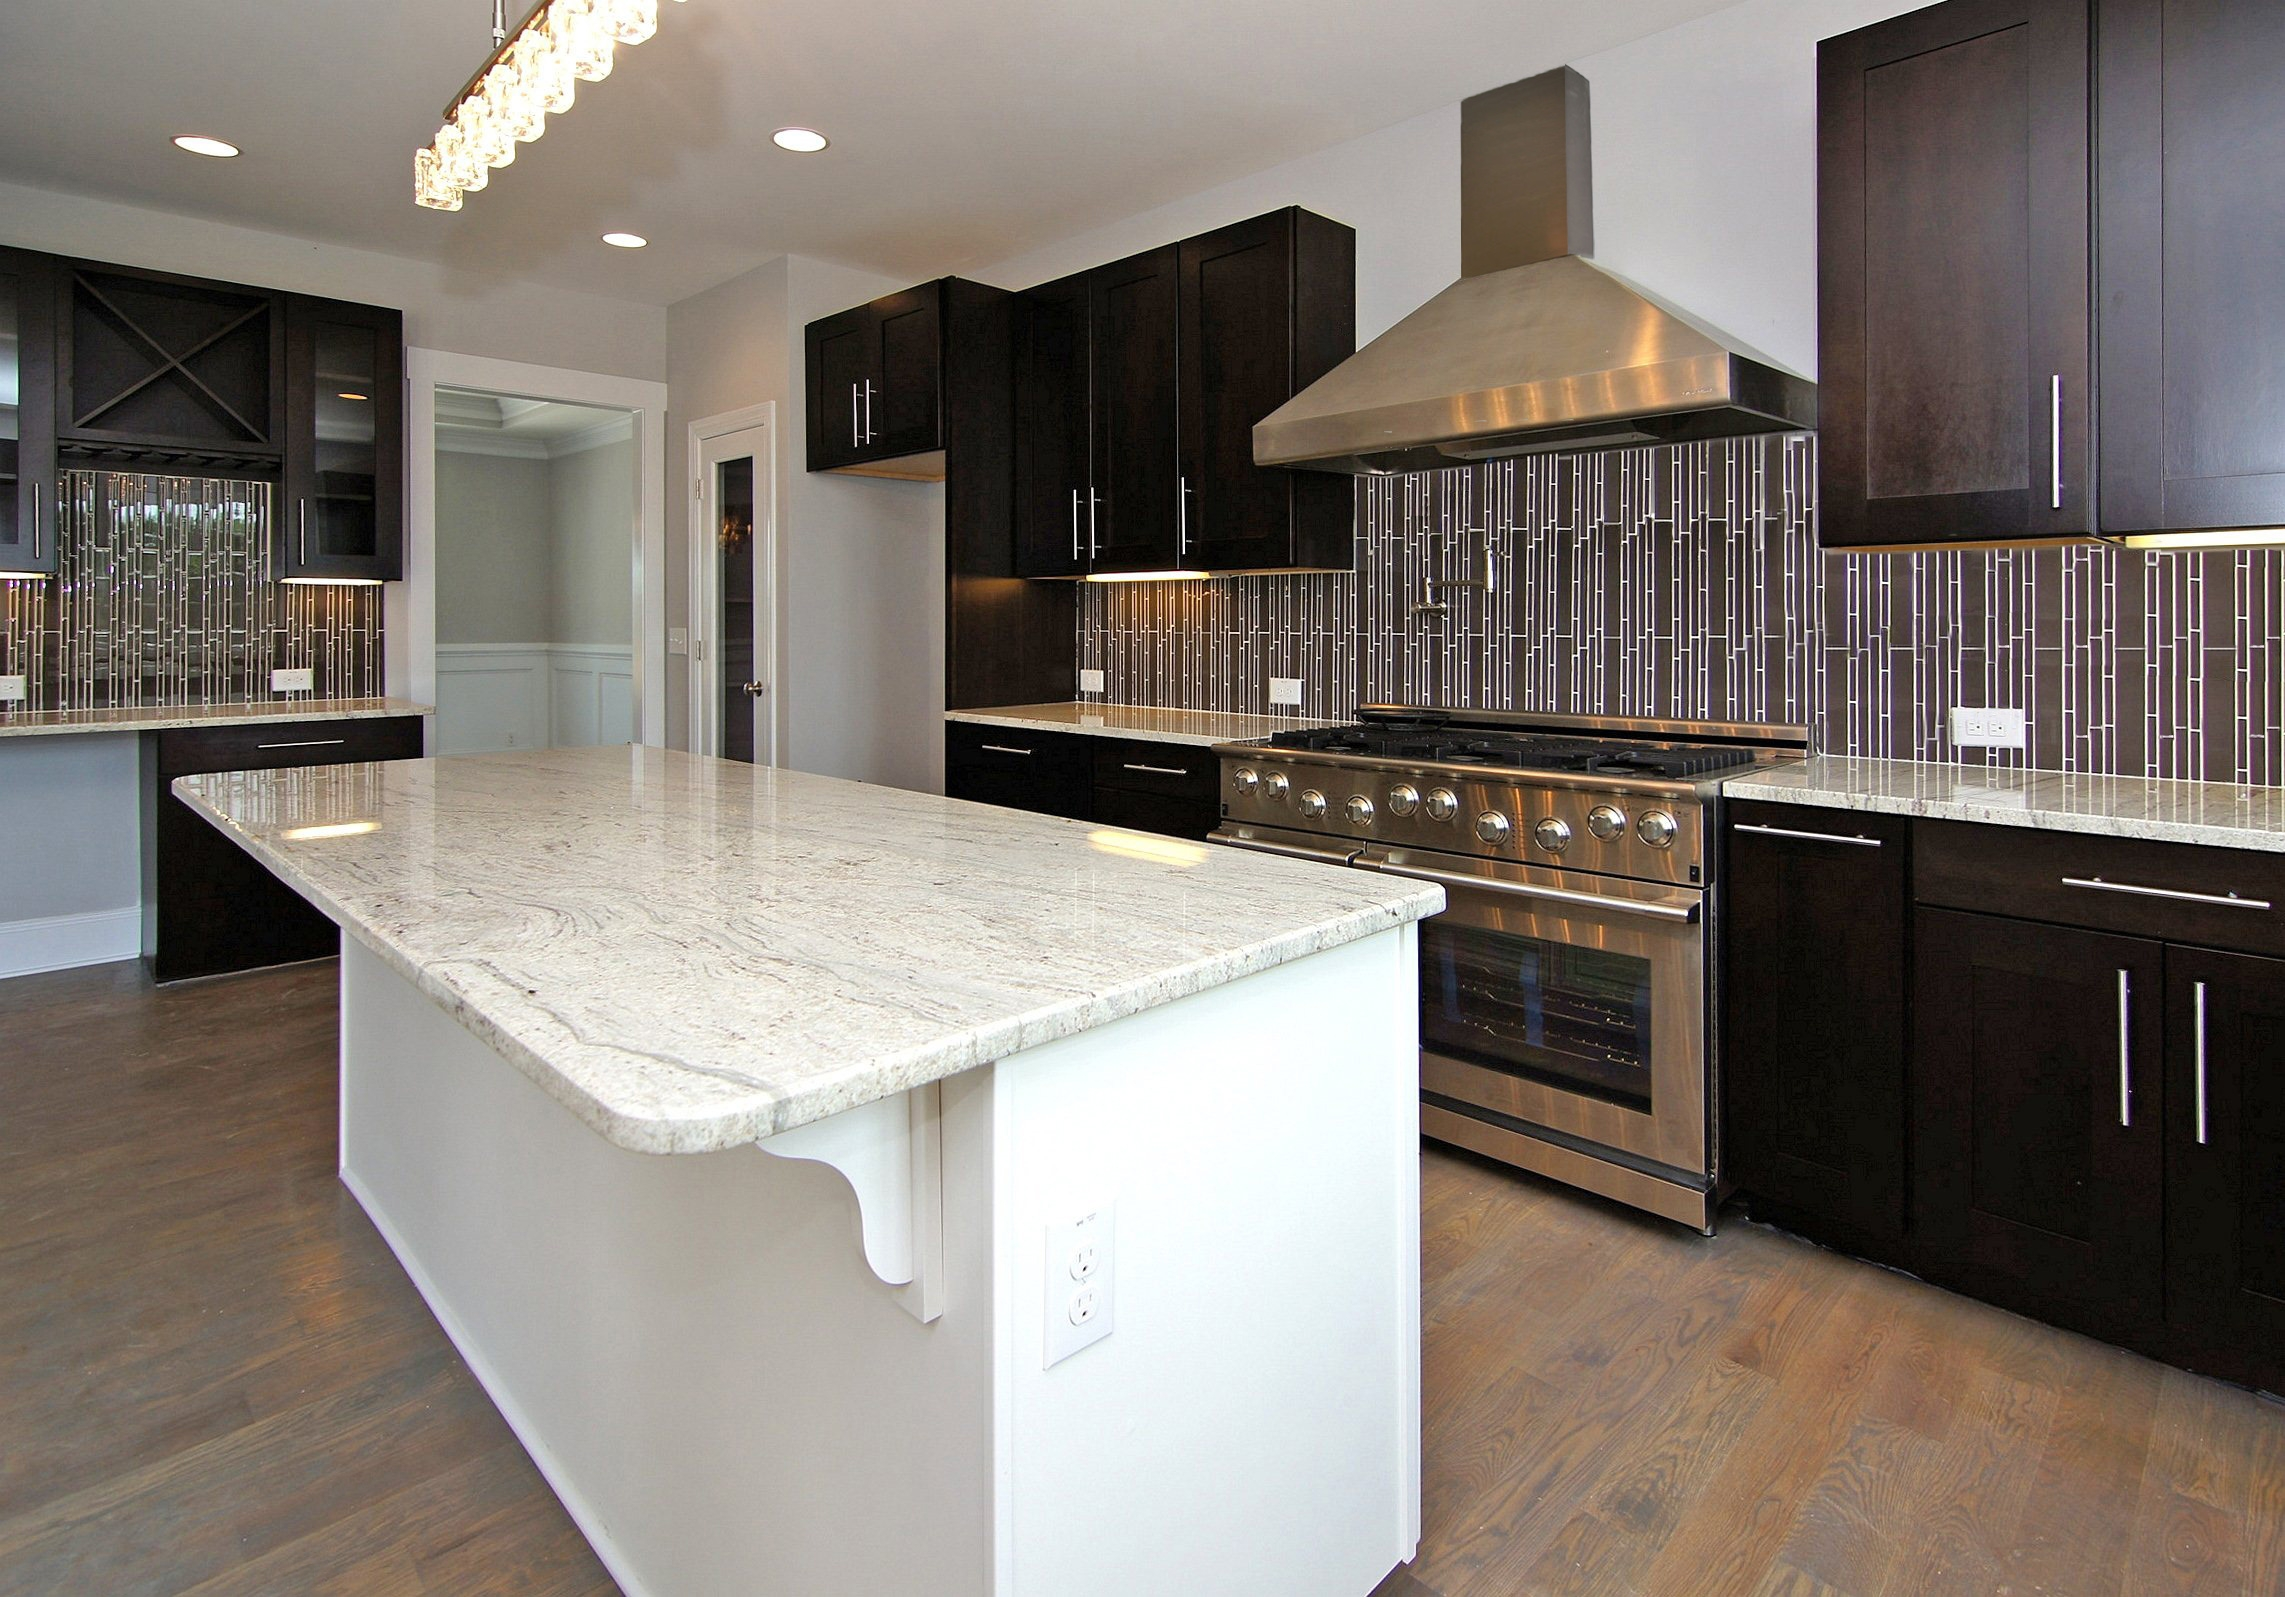 Best Color For Kitchen Cabinets 2014